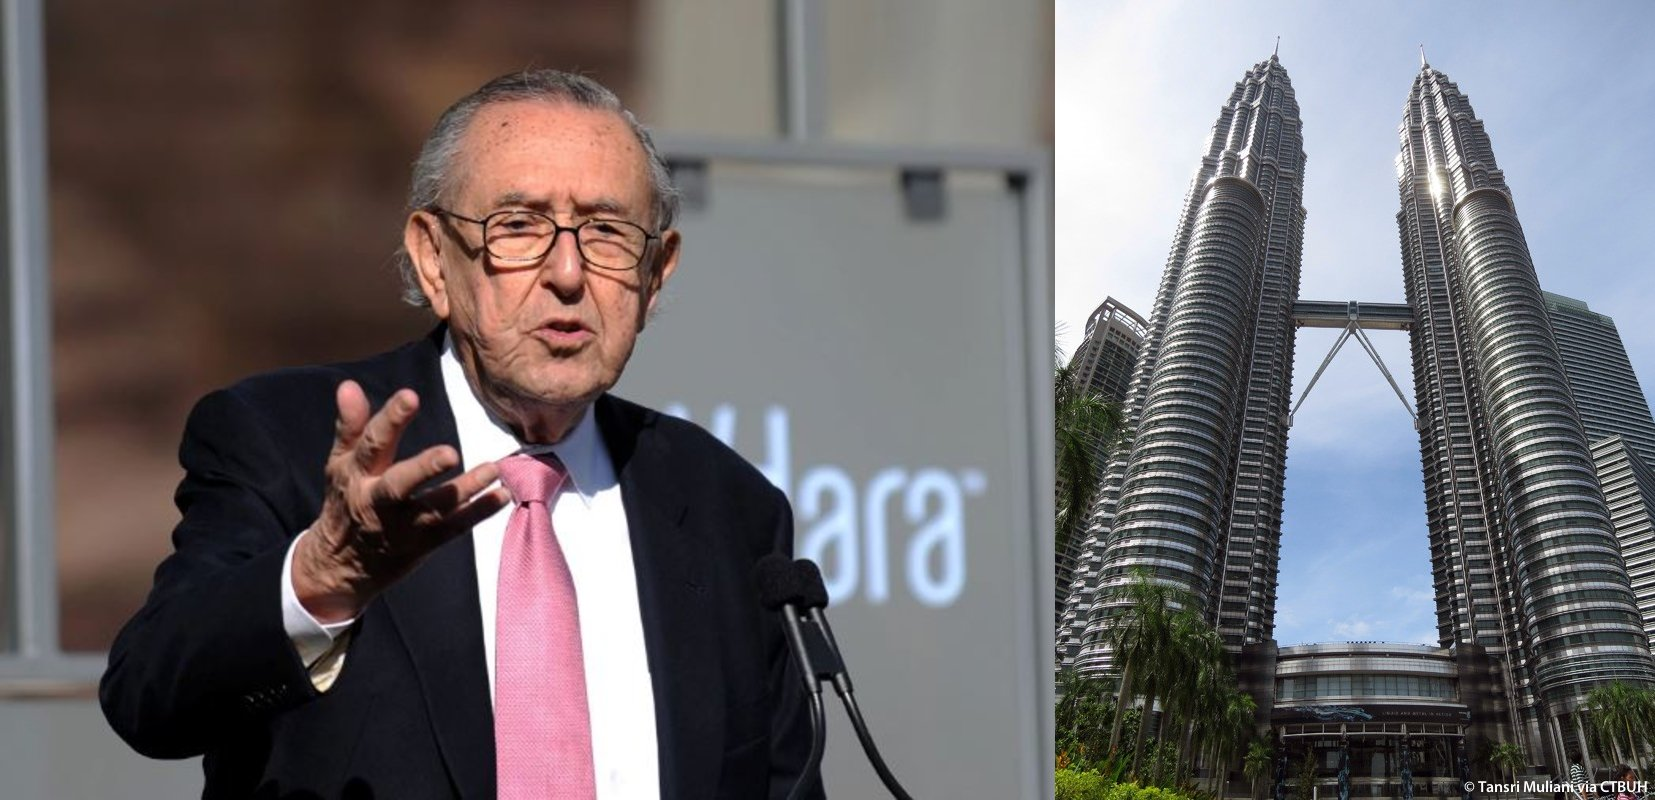 Twin Towers architect died at the age of 92